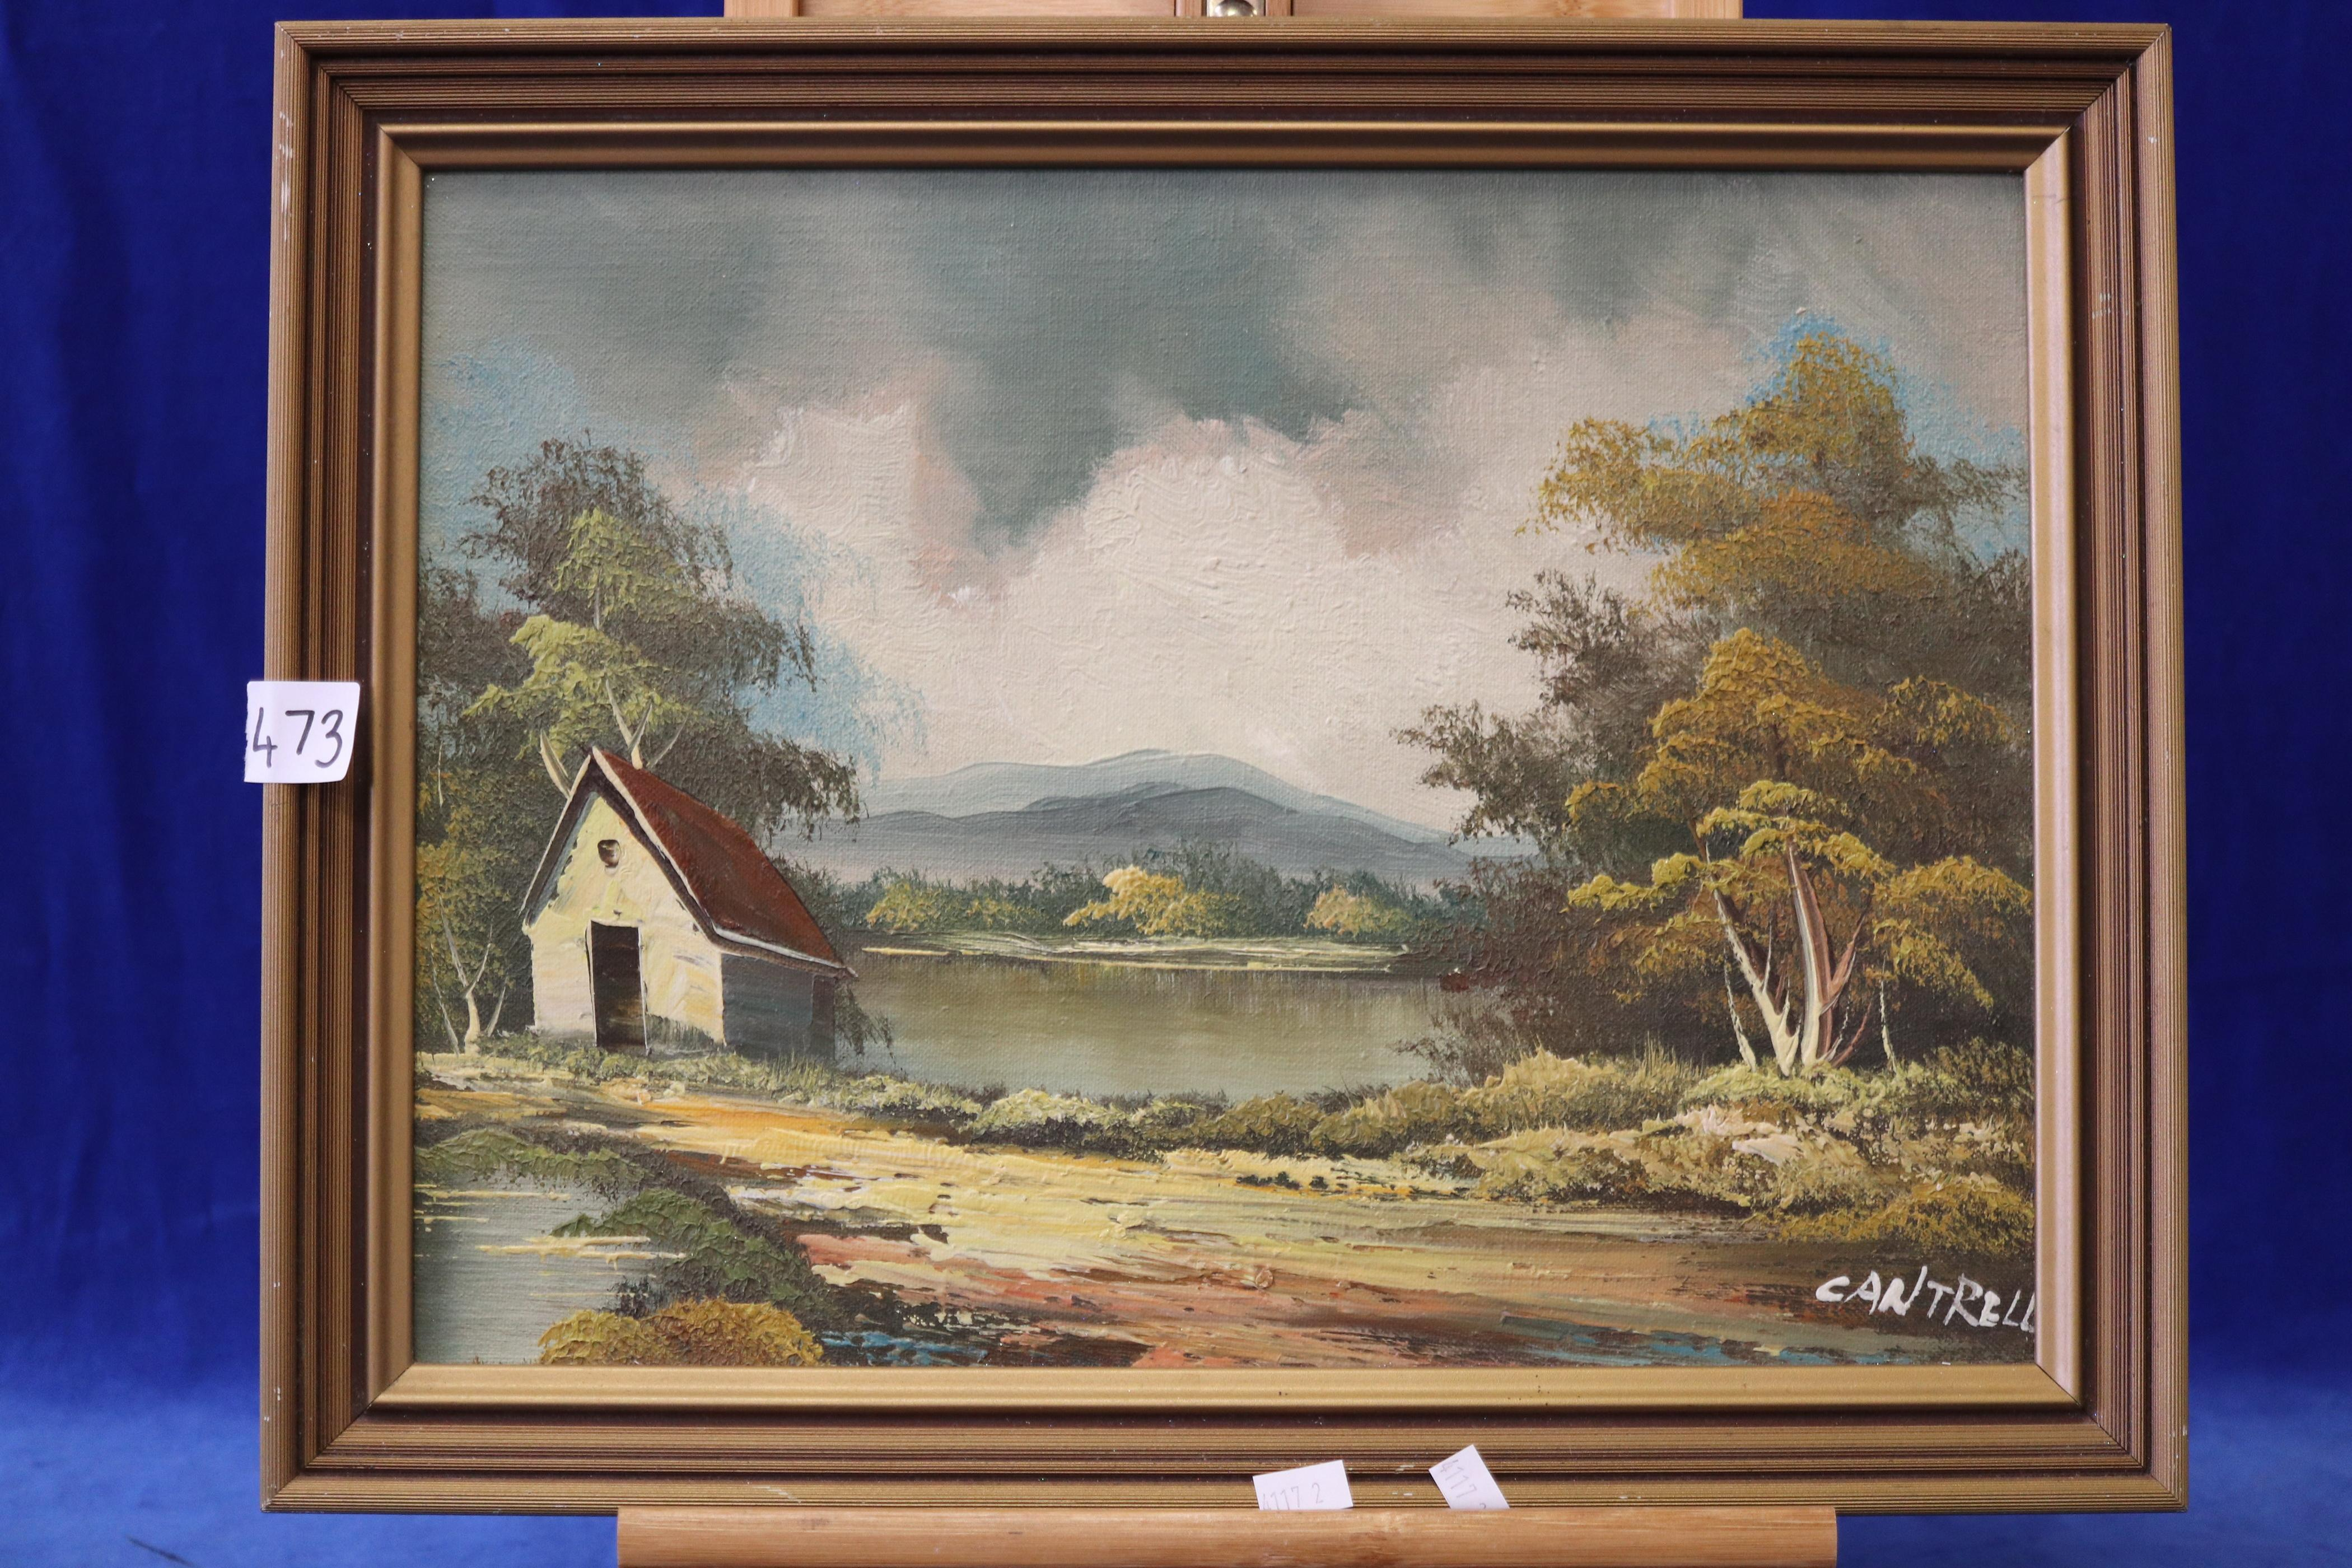 OIL PAINTING, SIGNED CANTRELL, LANDSCAPE SCENE